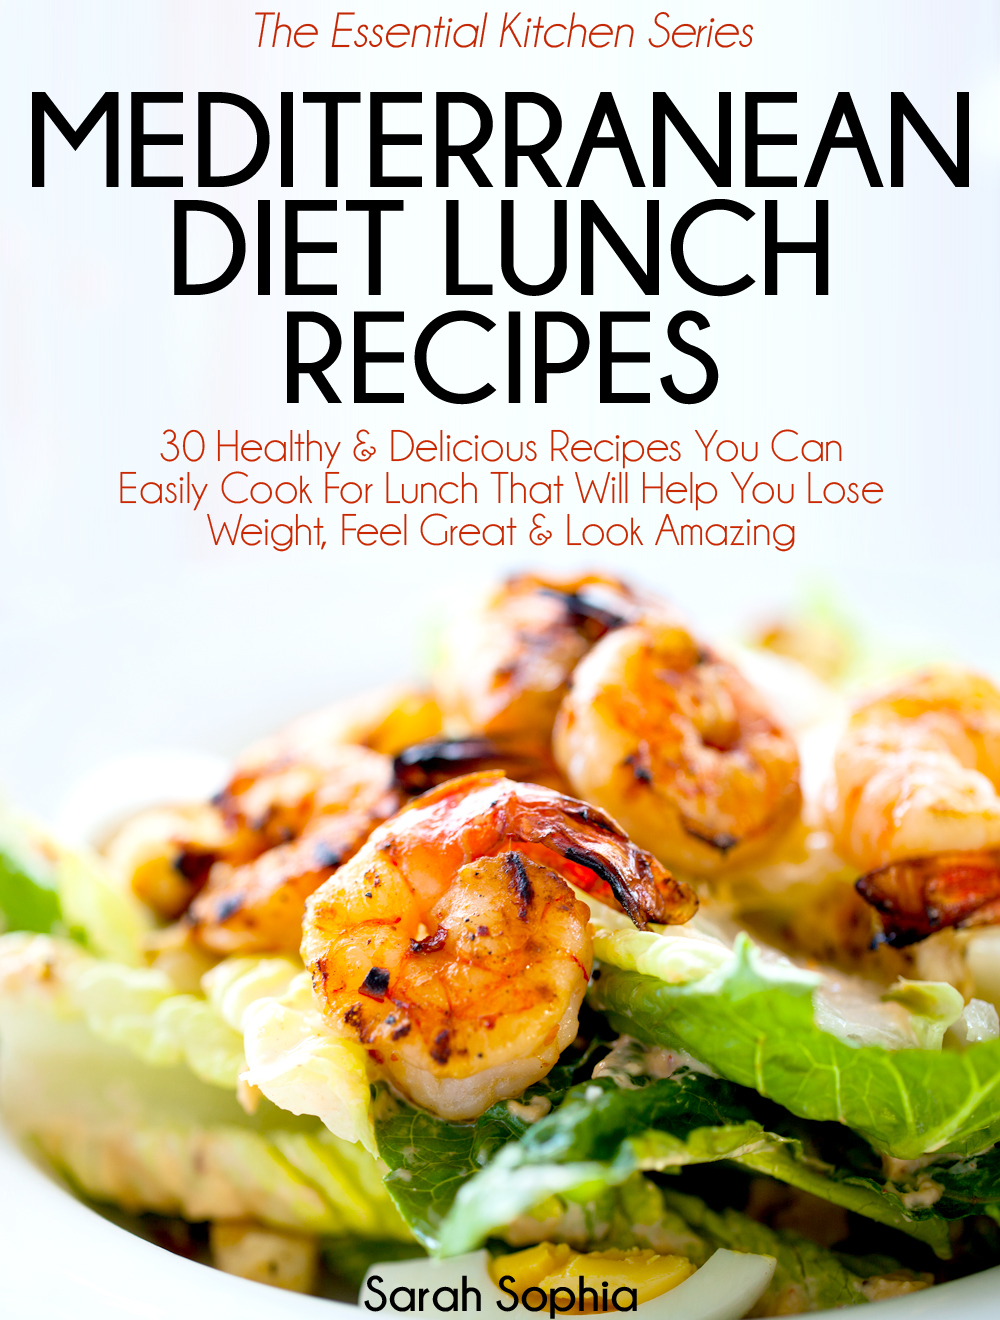 Mediterranean diet lunch recipes